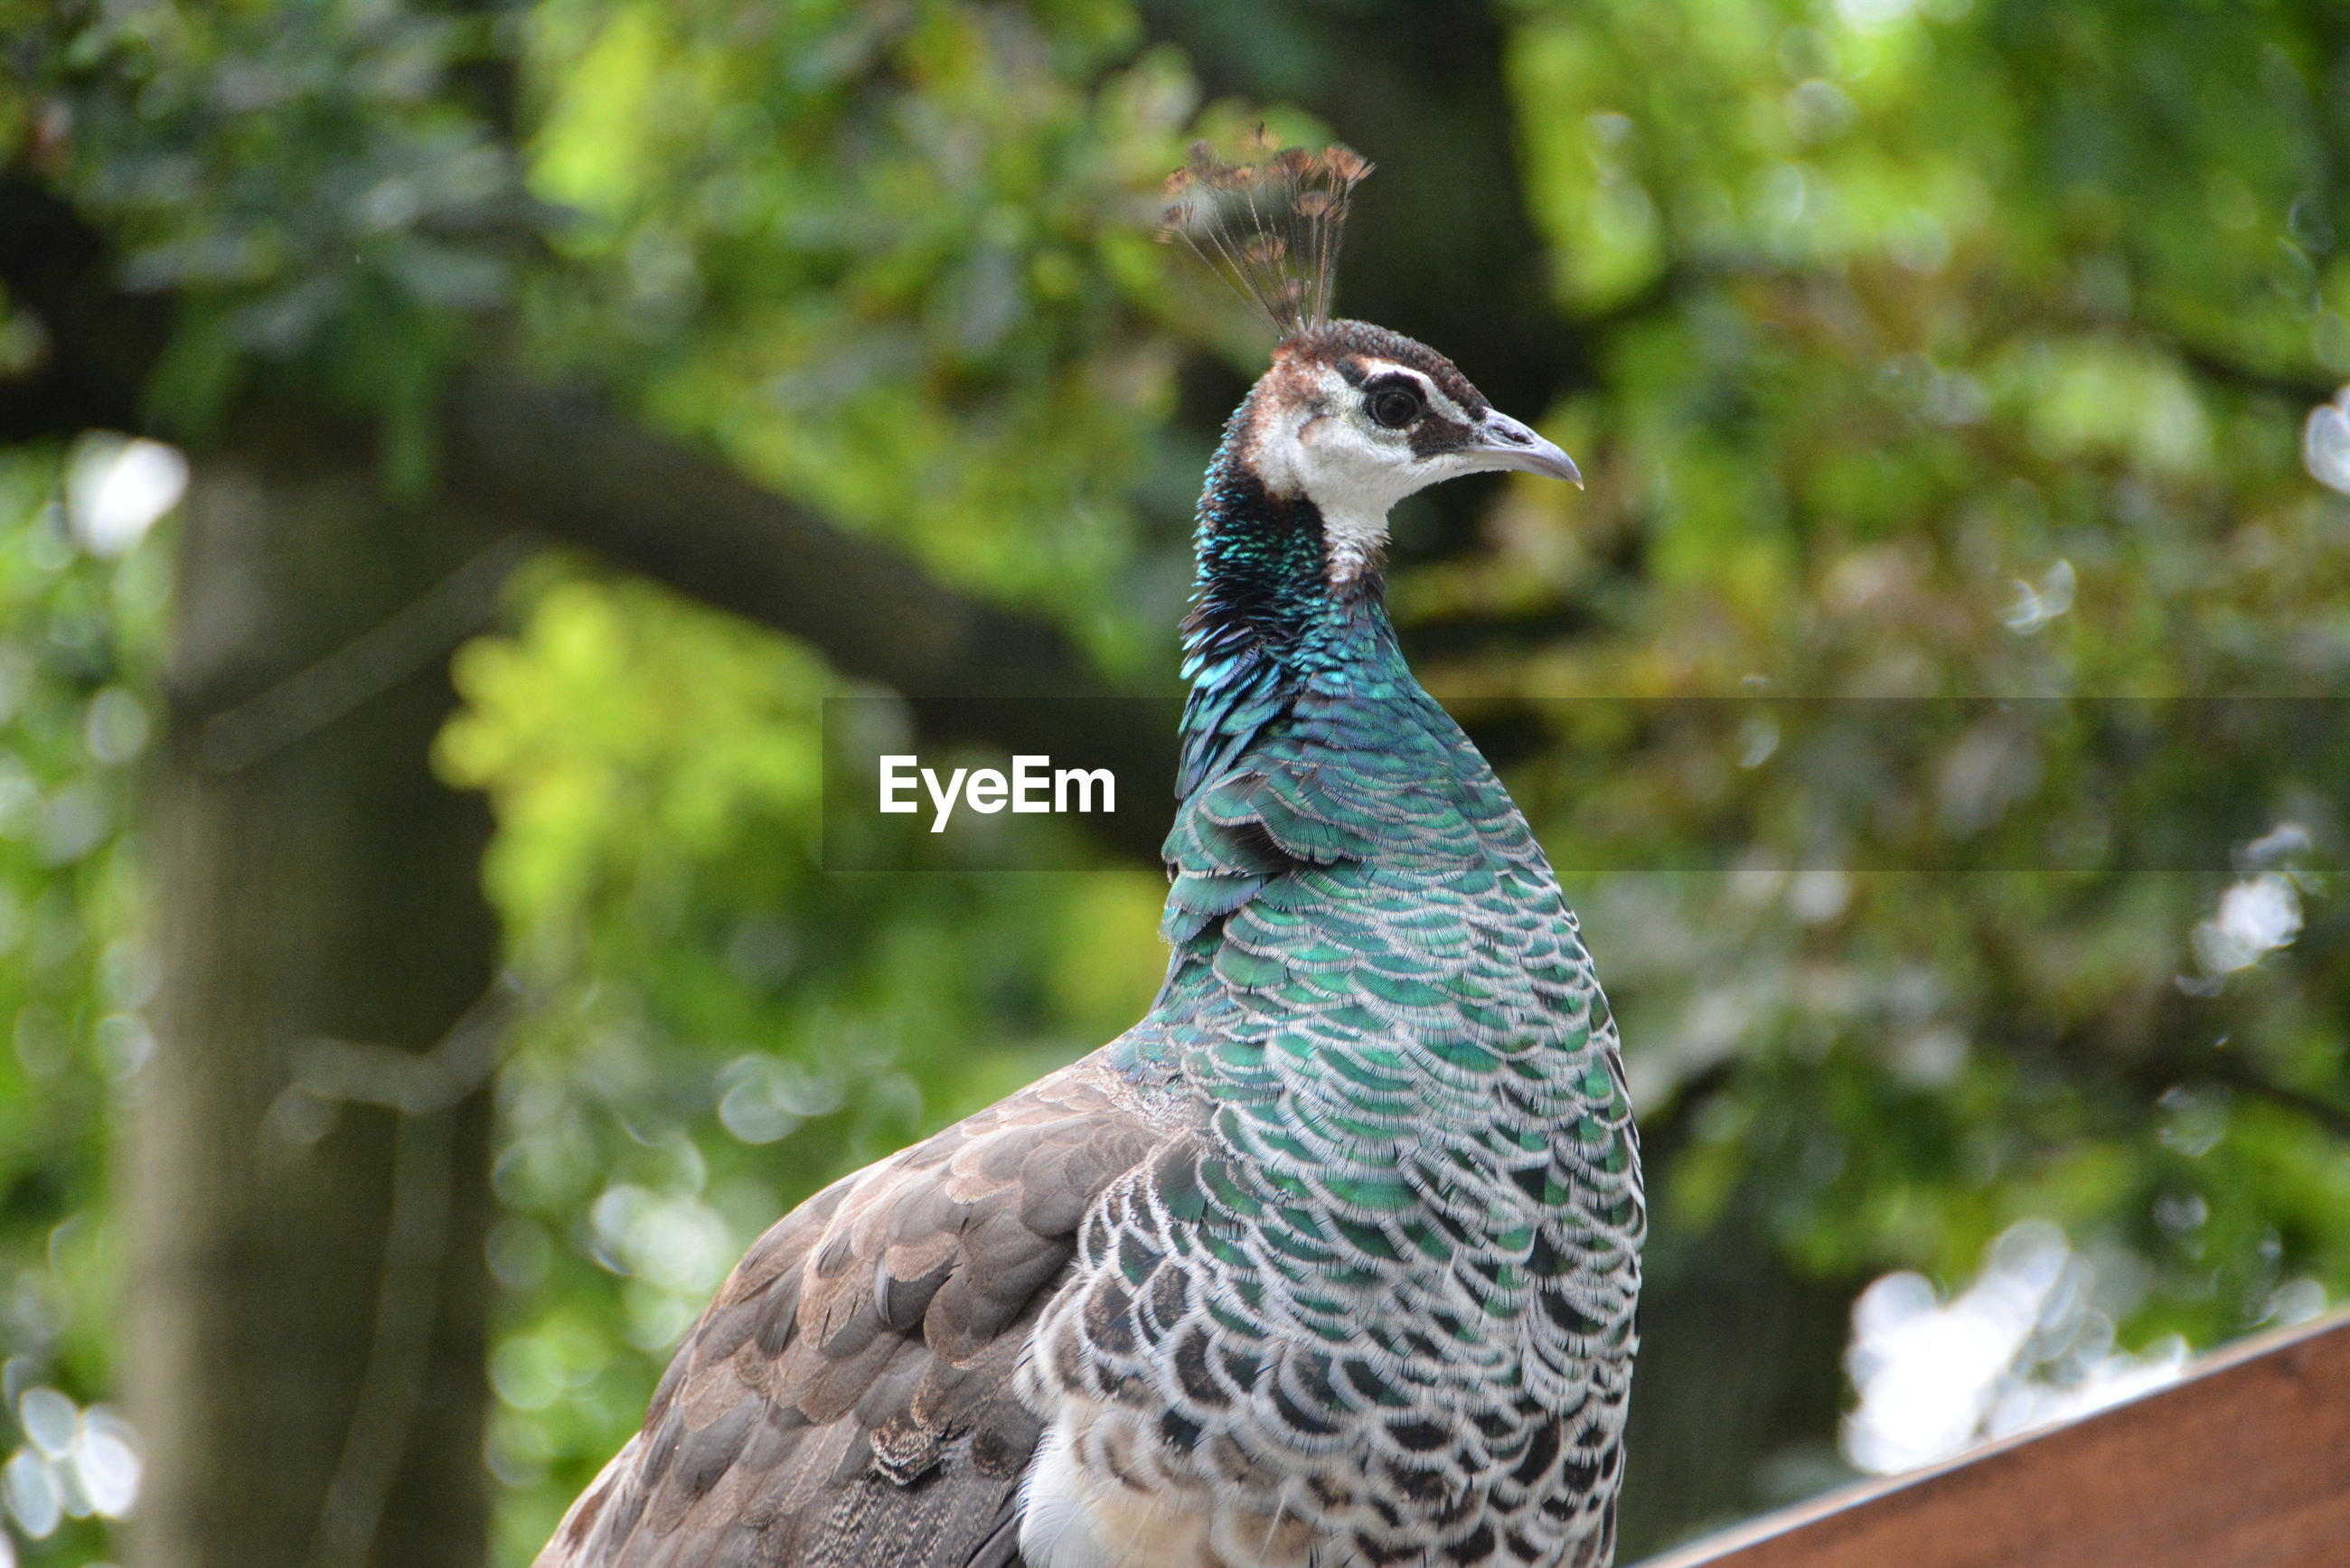 Low angle view of peahen